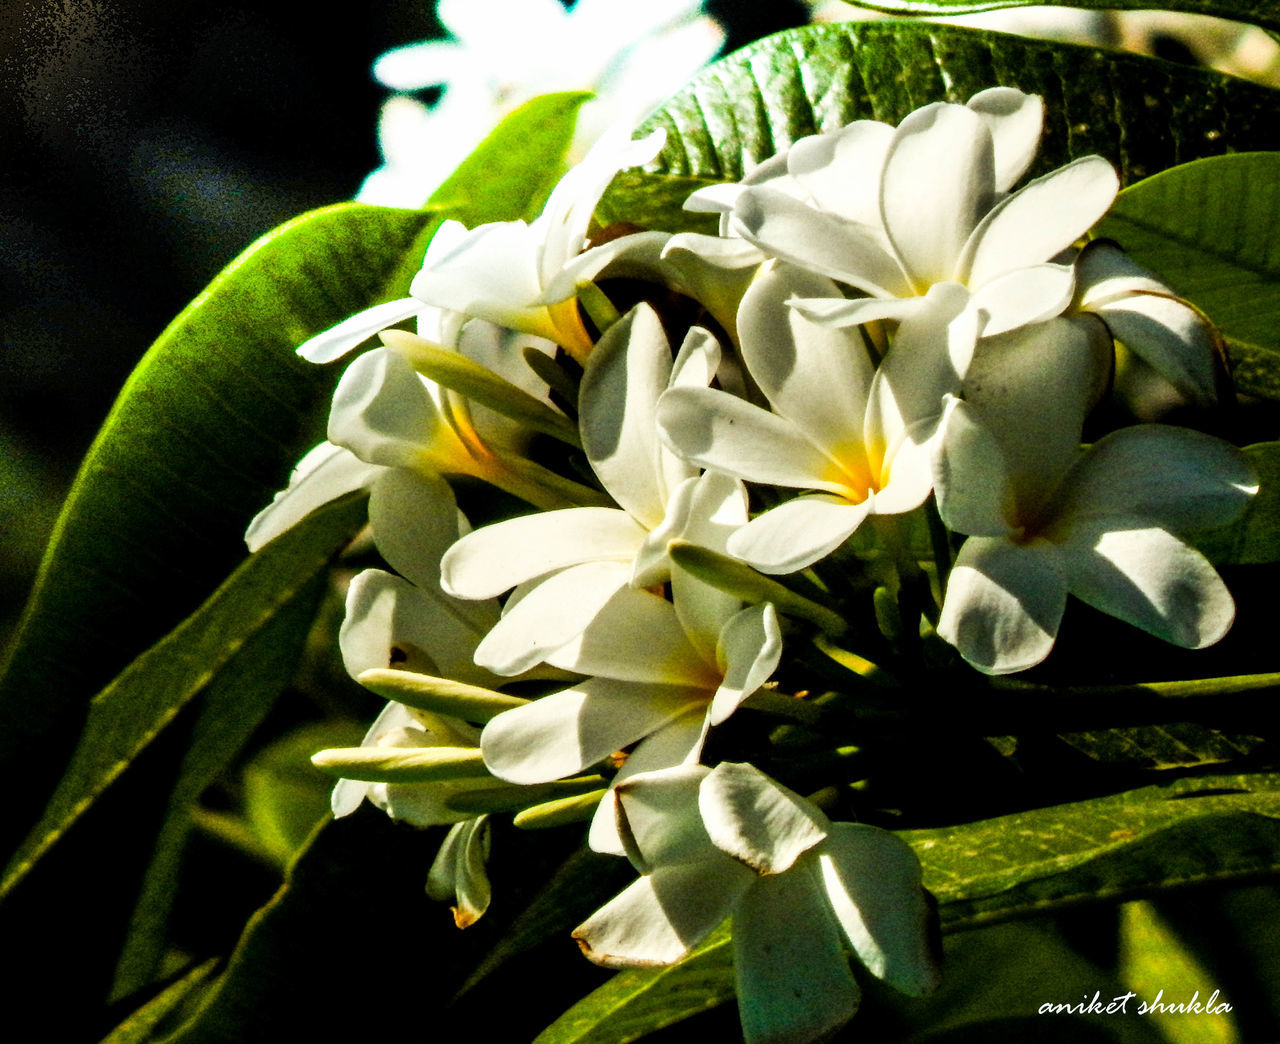 flower, growth, petal, plant, beauty in nature, nature, freshness, fragility, flower head, no people, leaf, close-up, day, outdoors, blooming